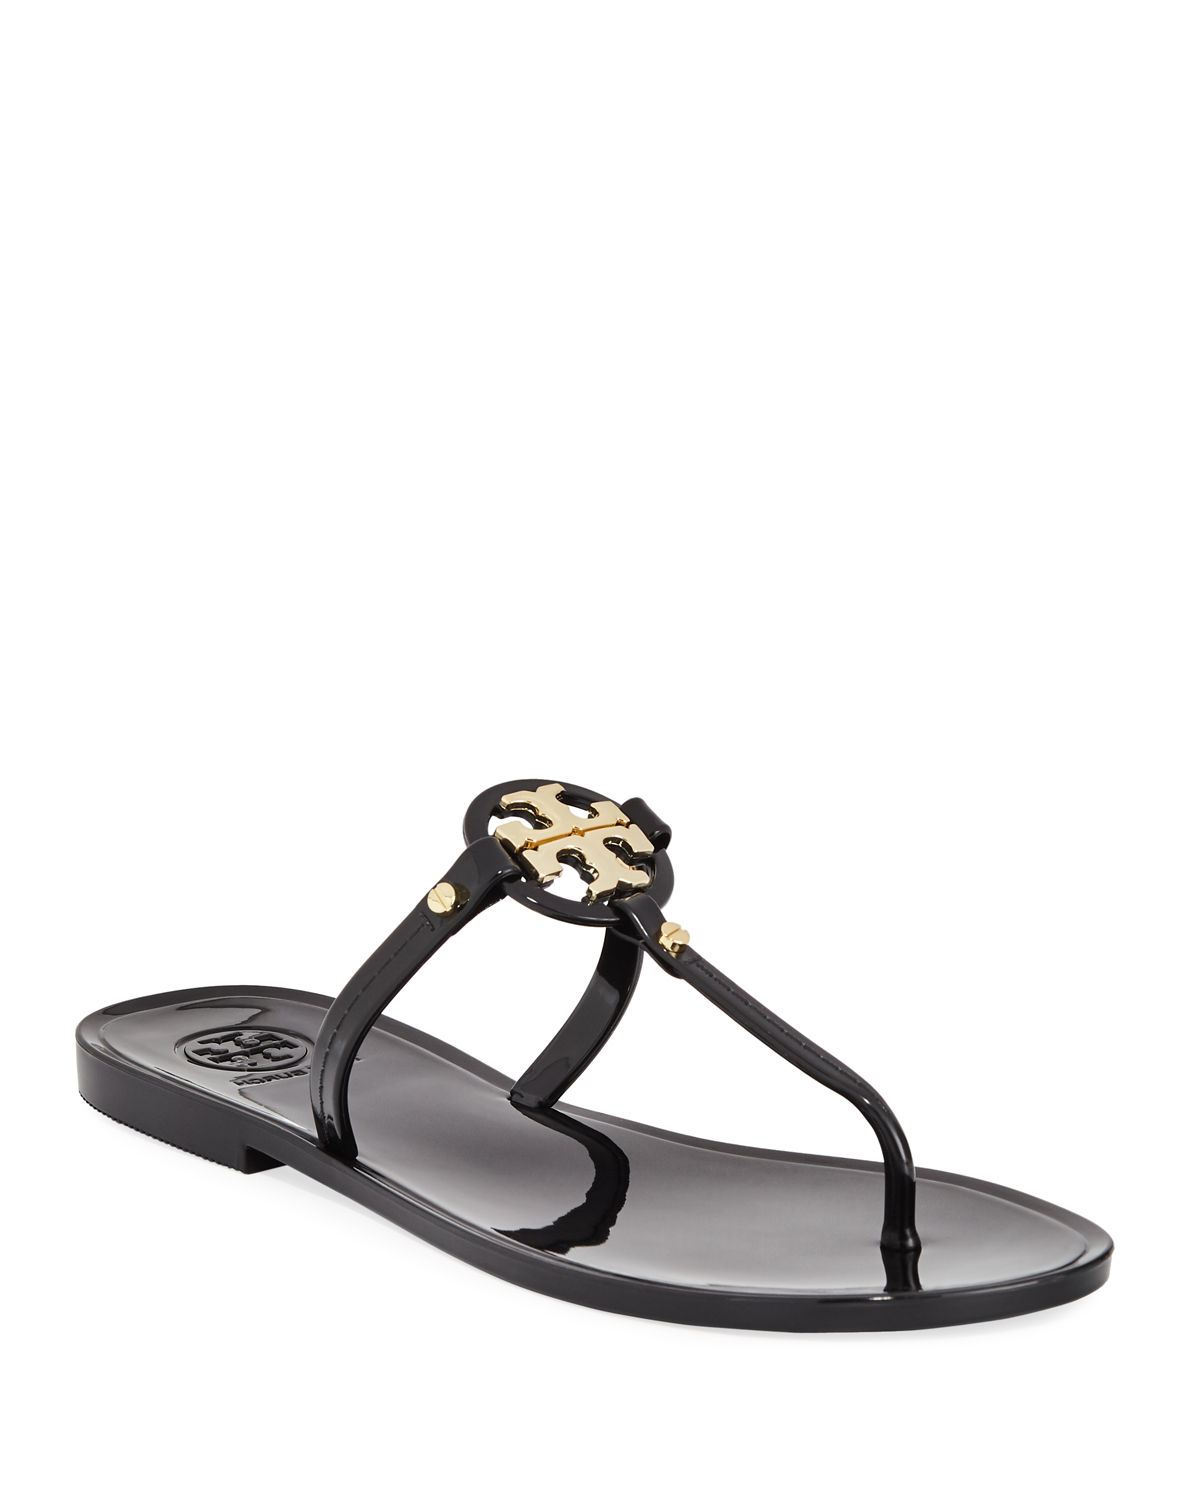 765825702b47 Tory Burch Mini Miller Flat Jelly Thong Sandals